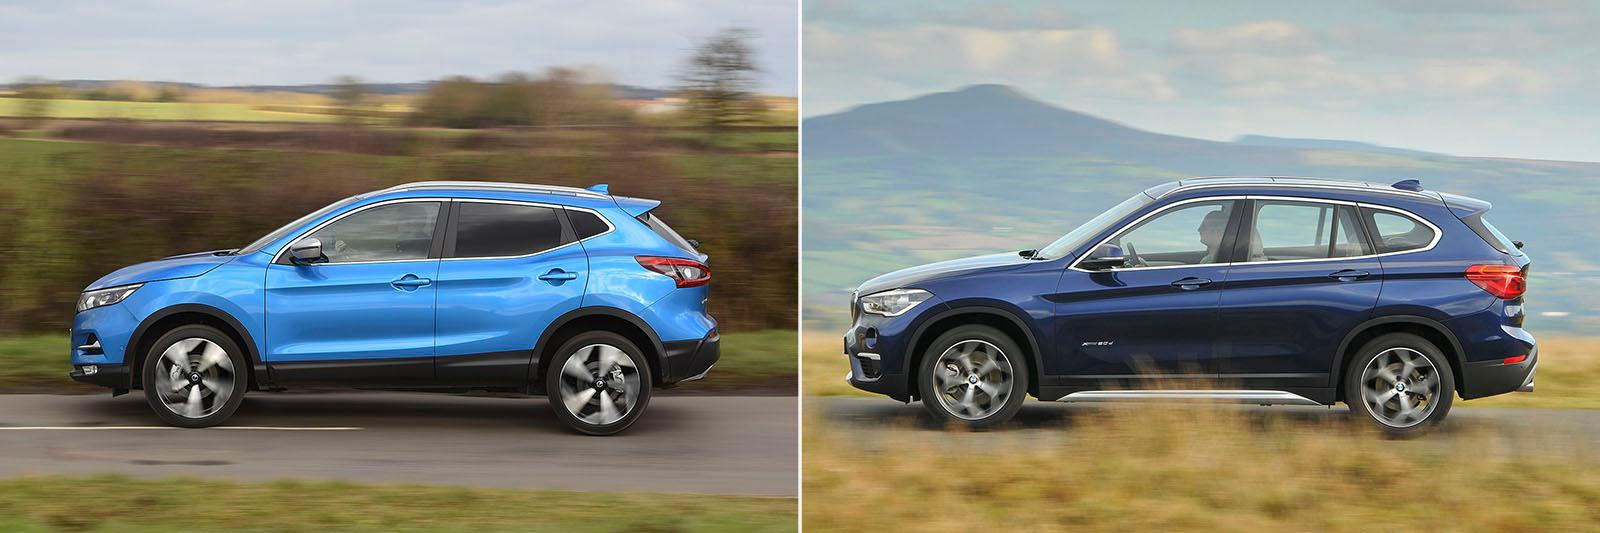 New Nissan Qashqai vs used BMW X1: which is best?